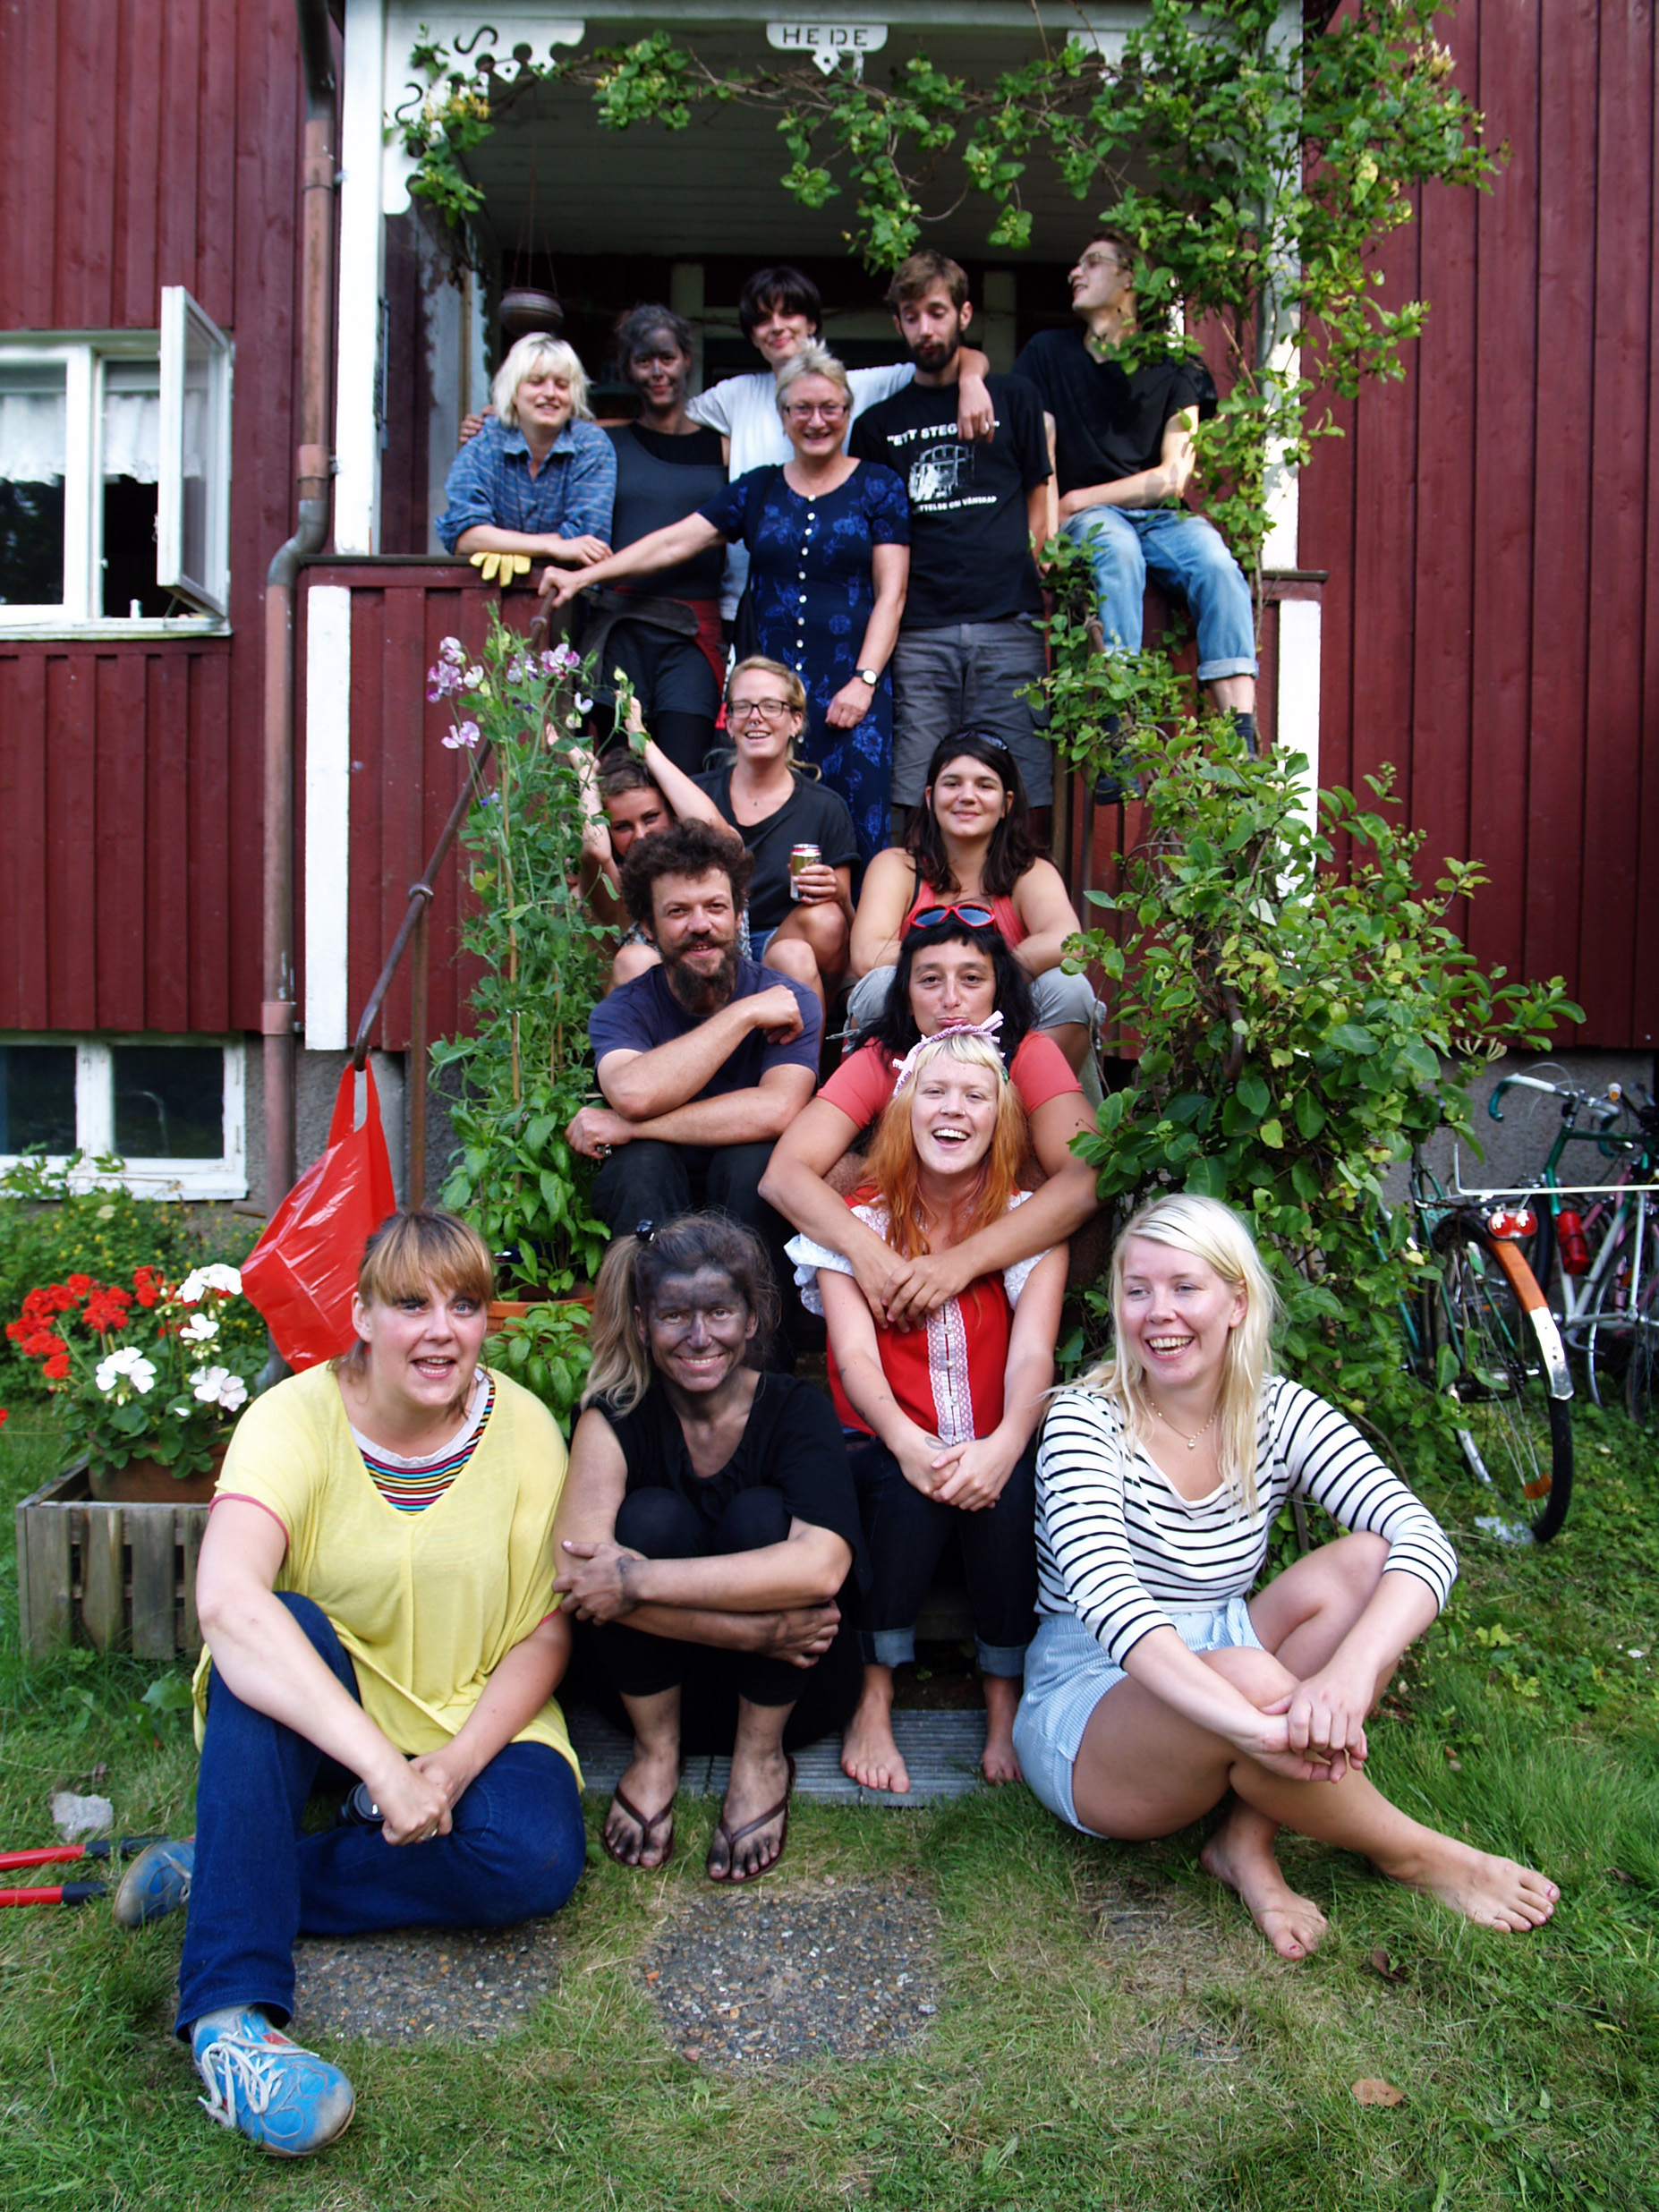 HOME_OPEN_HOUSE_SKREDSVIK_SWEEDEN_1